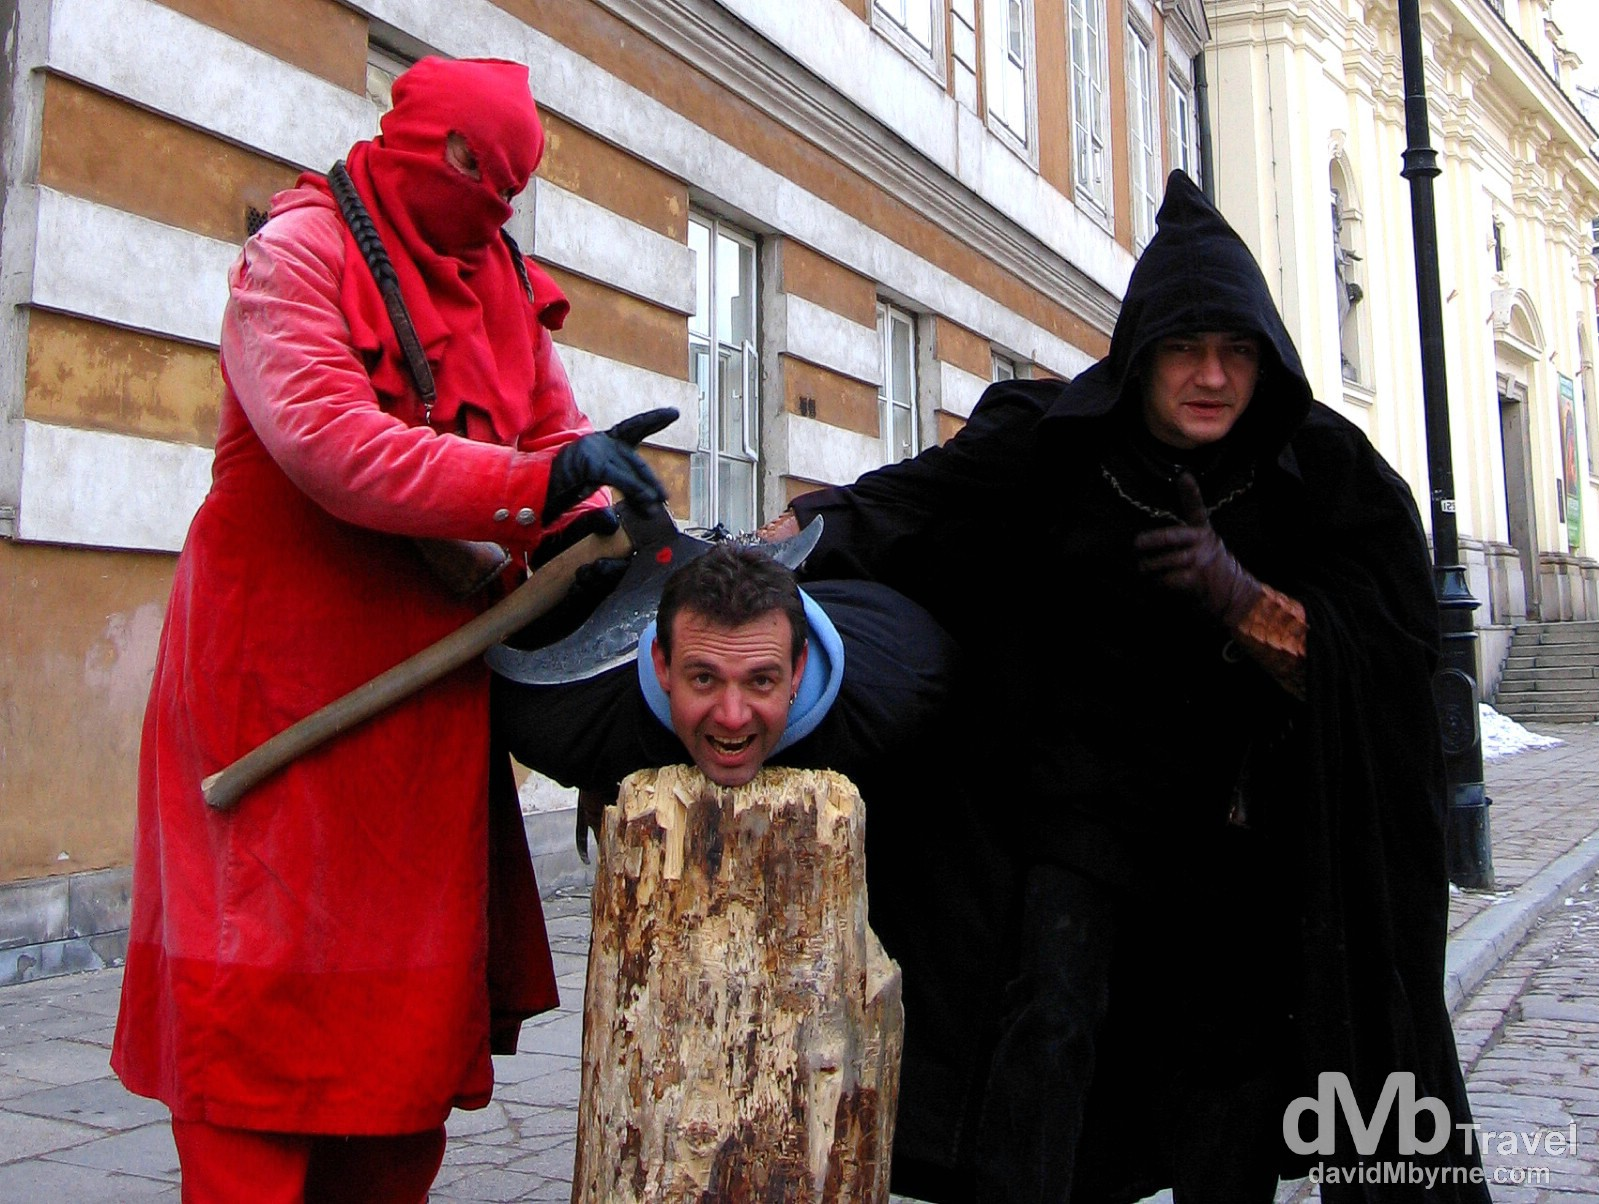 Execution in Old Town, Warsaw, Poland. March 5, 2005.